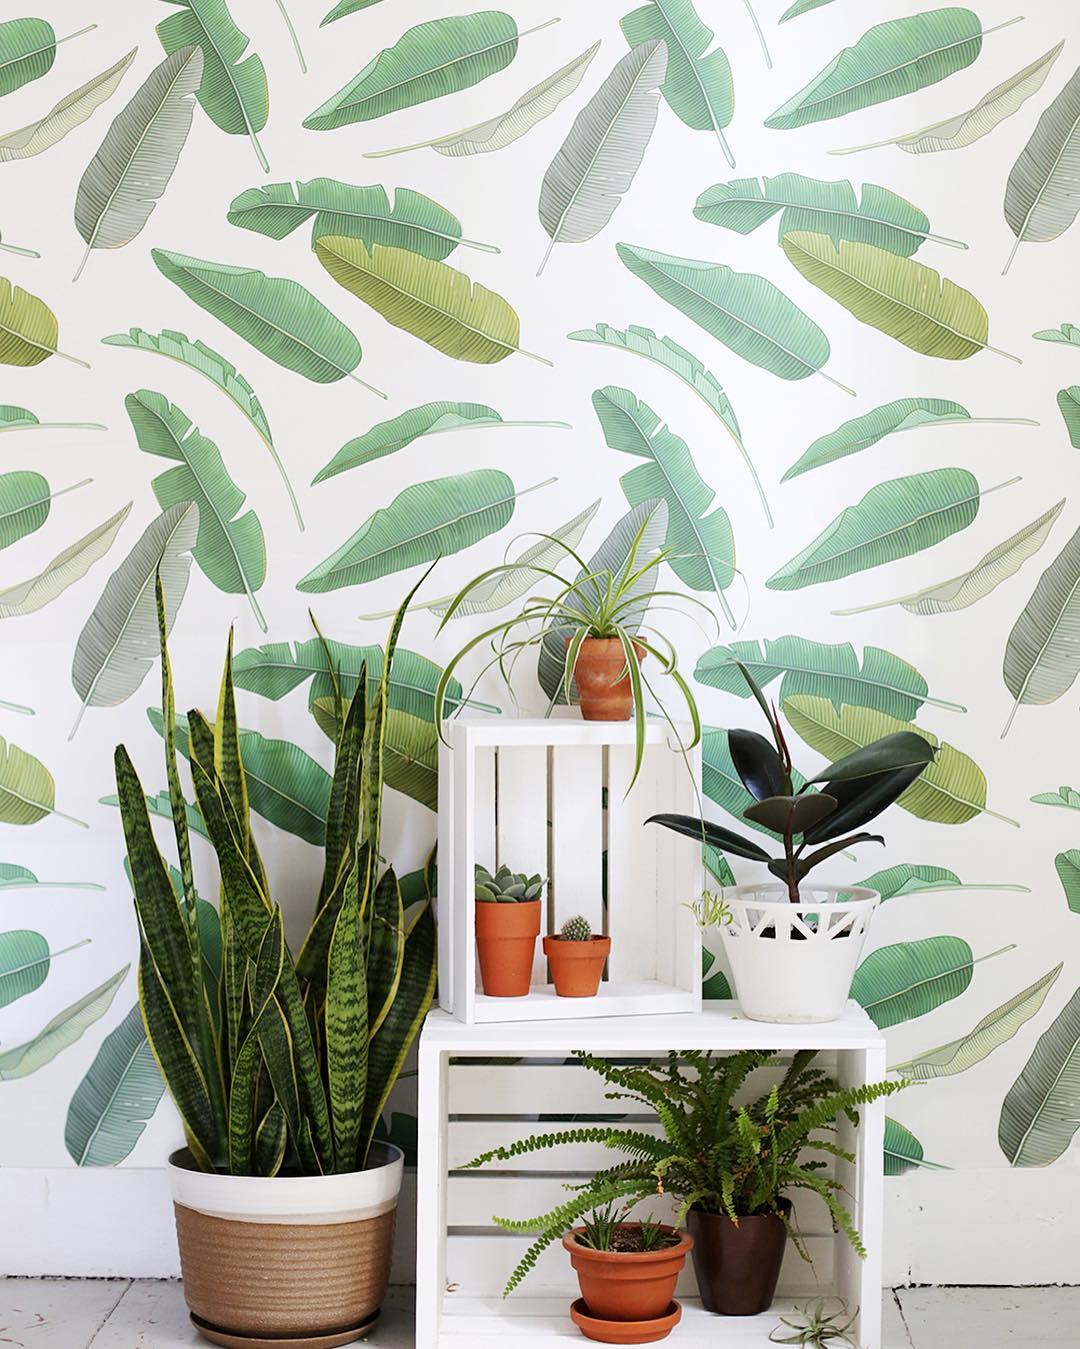 Banana Leaf Wallpaper. Bold. Beautiful. A No Brainer! Only at WallsNeedLove